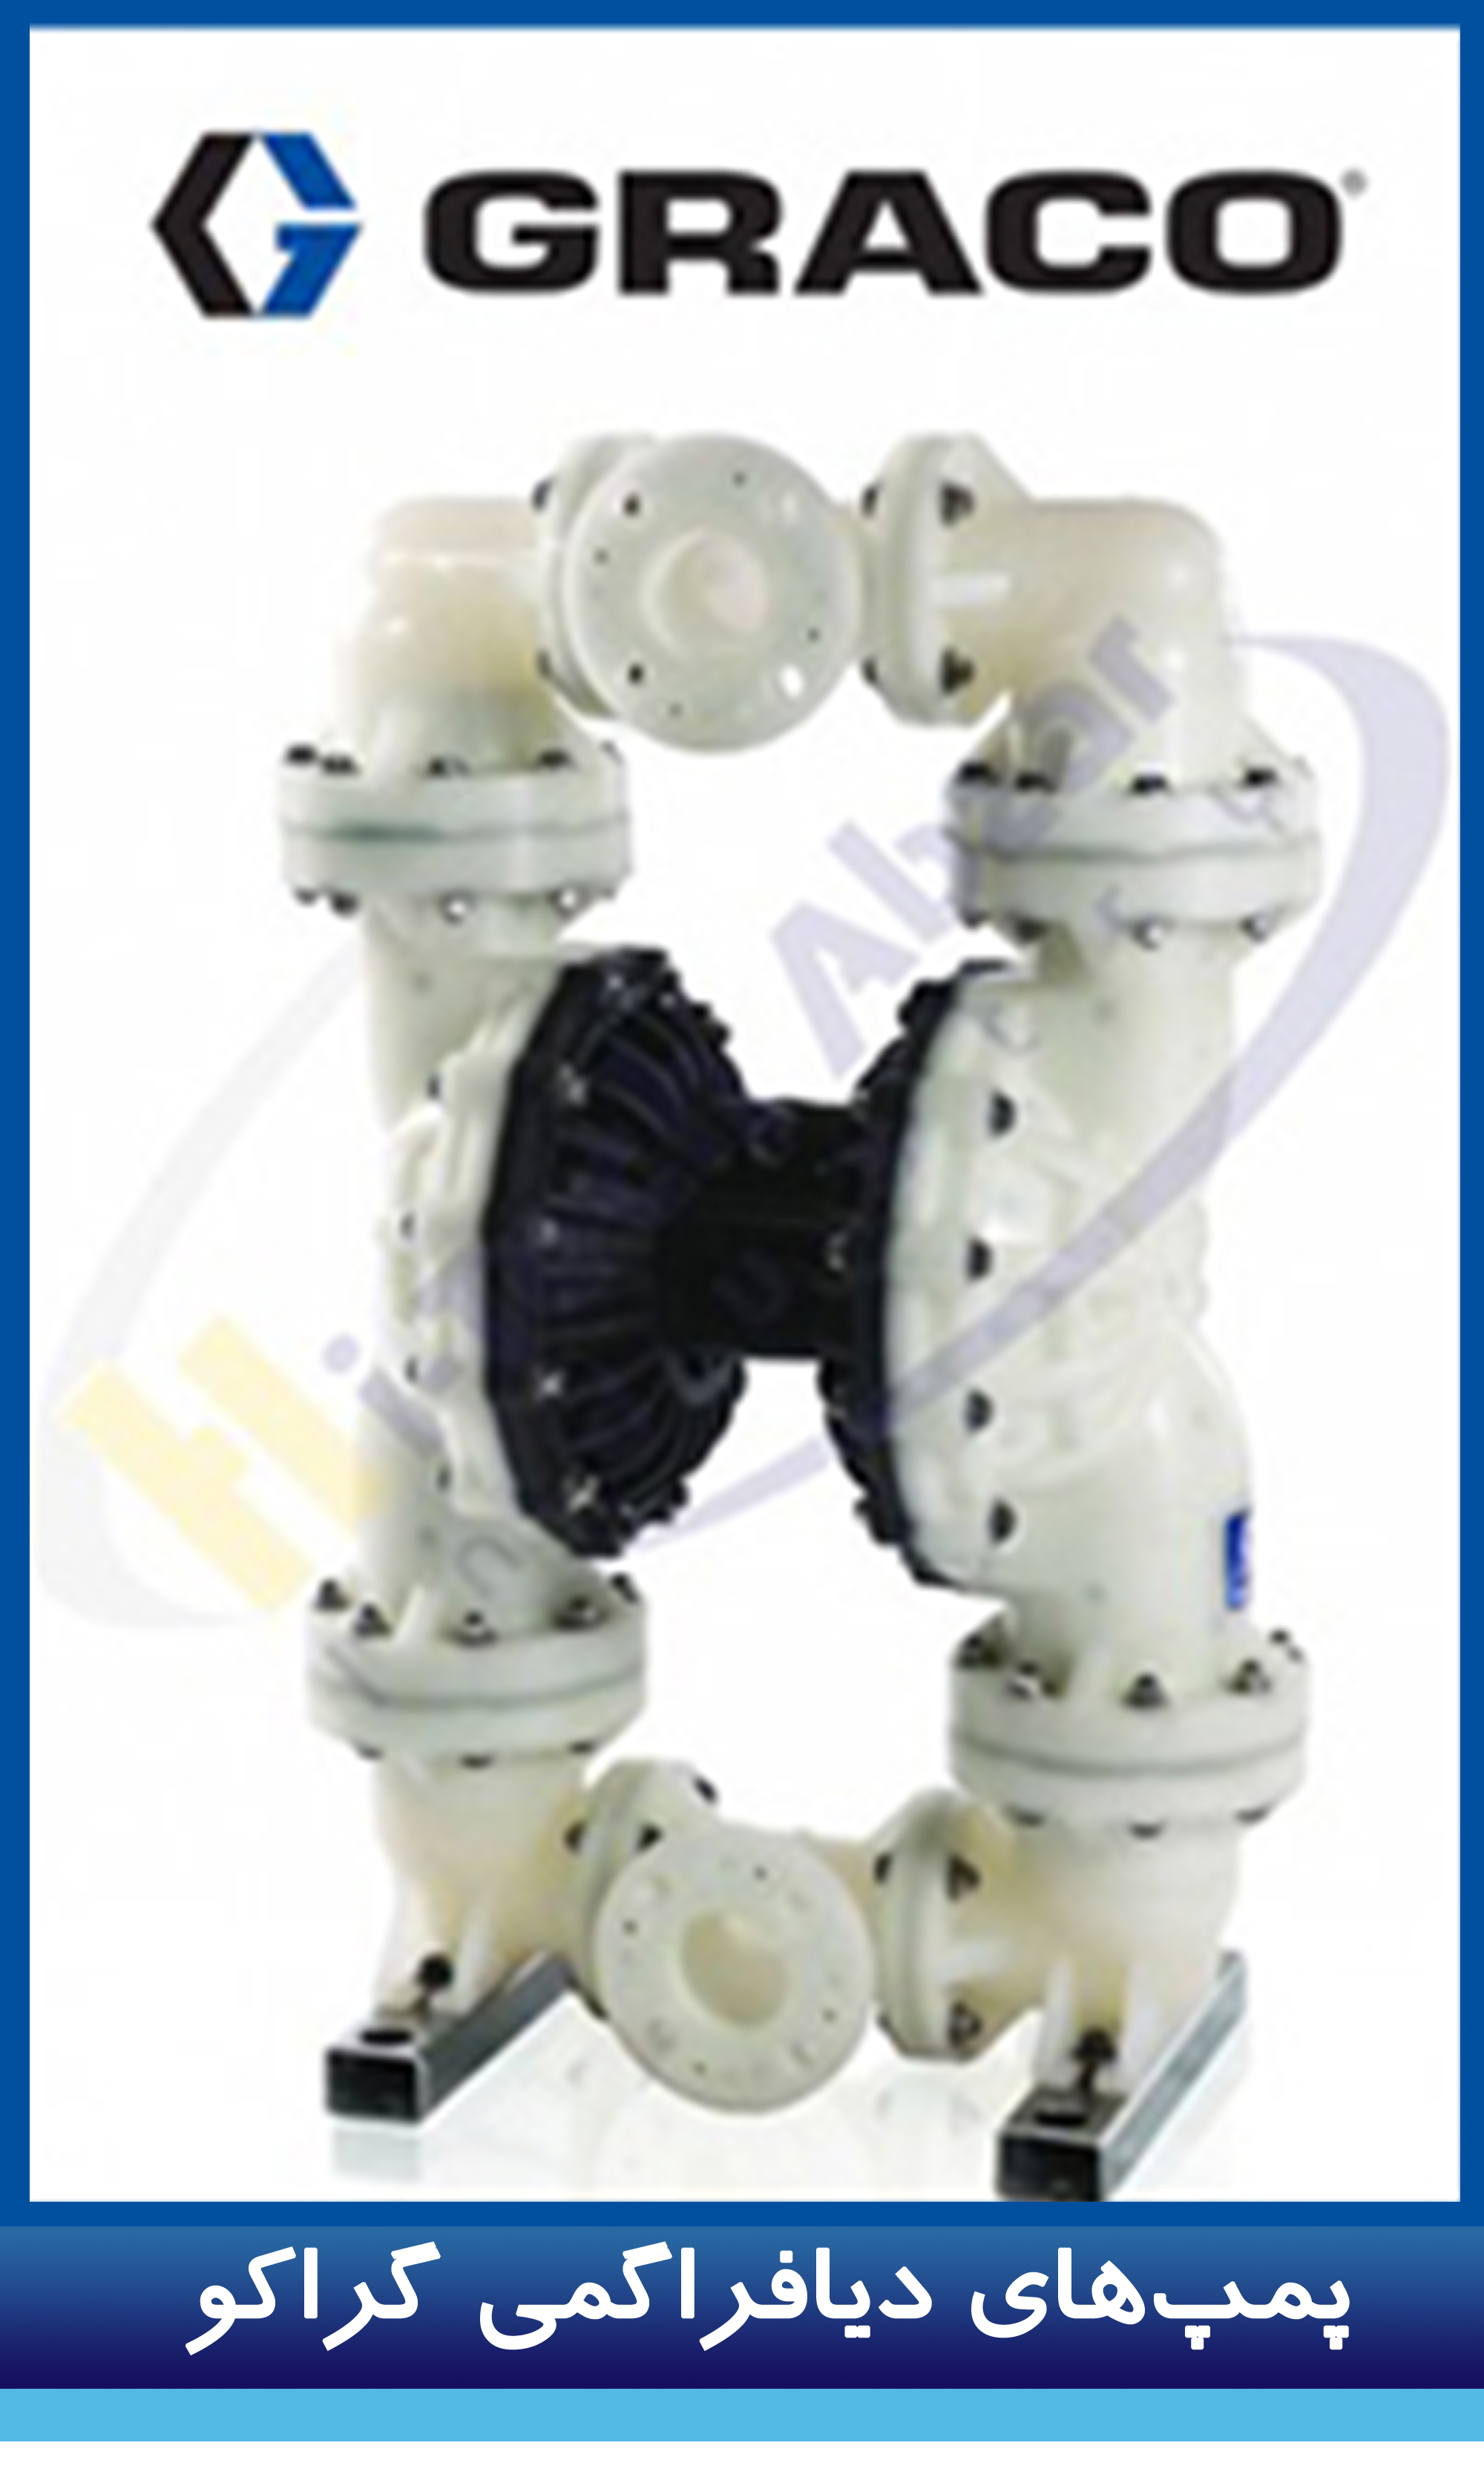 graco_diaphragm_pump_400